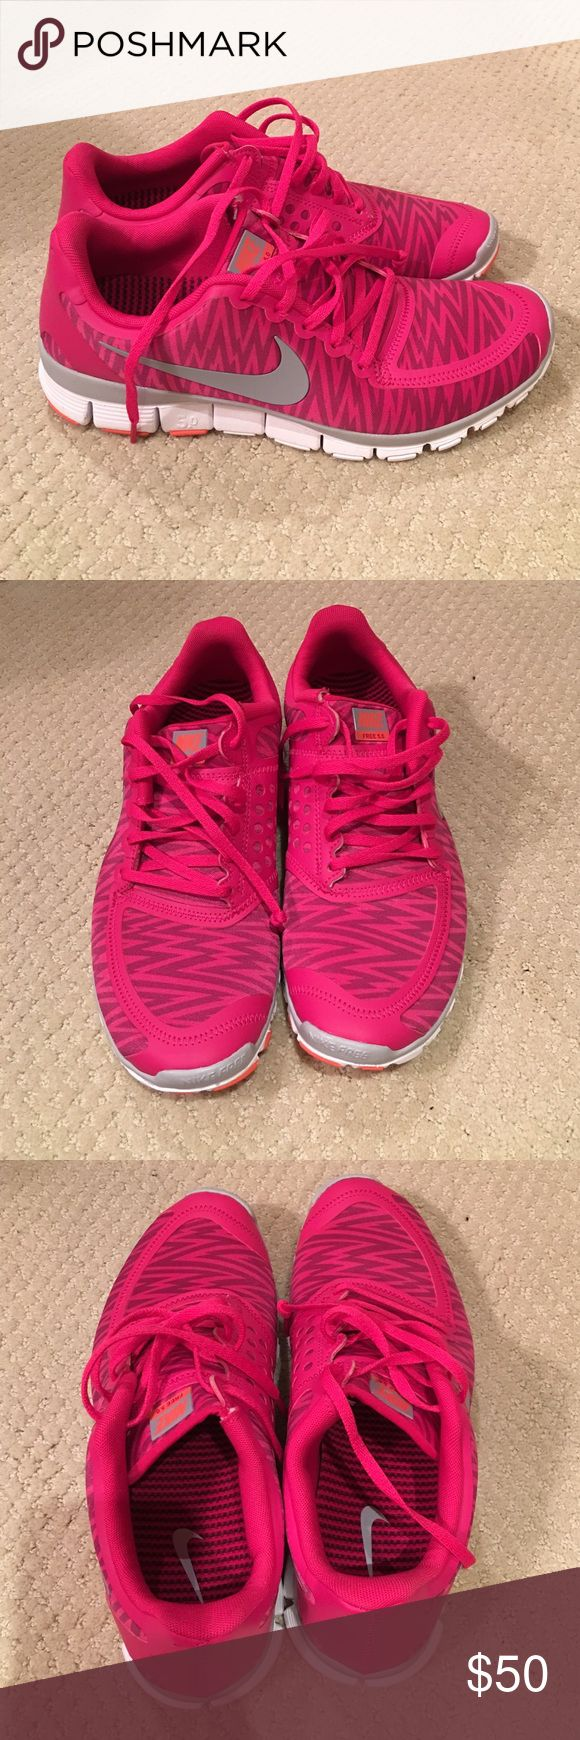 Nike Free 5.0 Pink shoes 11 Brand new Nike Free 5.0 running shoes women Size 11 sneakers, no tags but brand new never worn Nike Shoes Sneakers